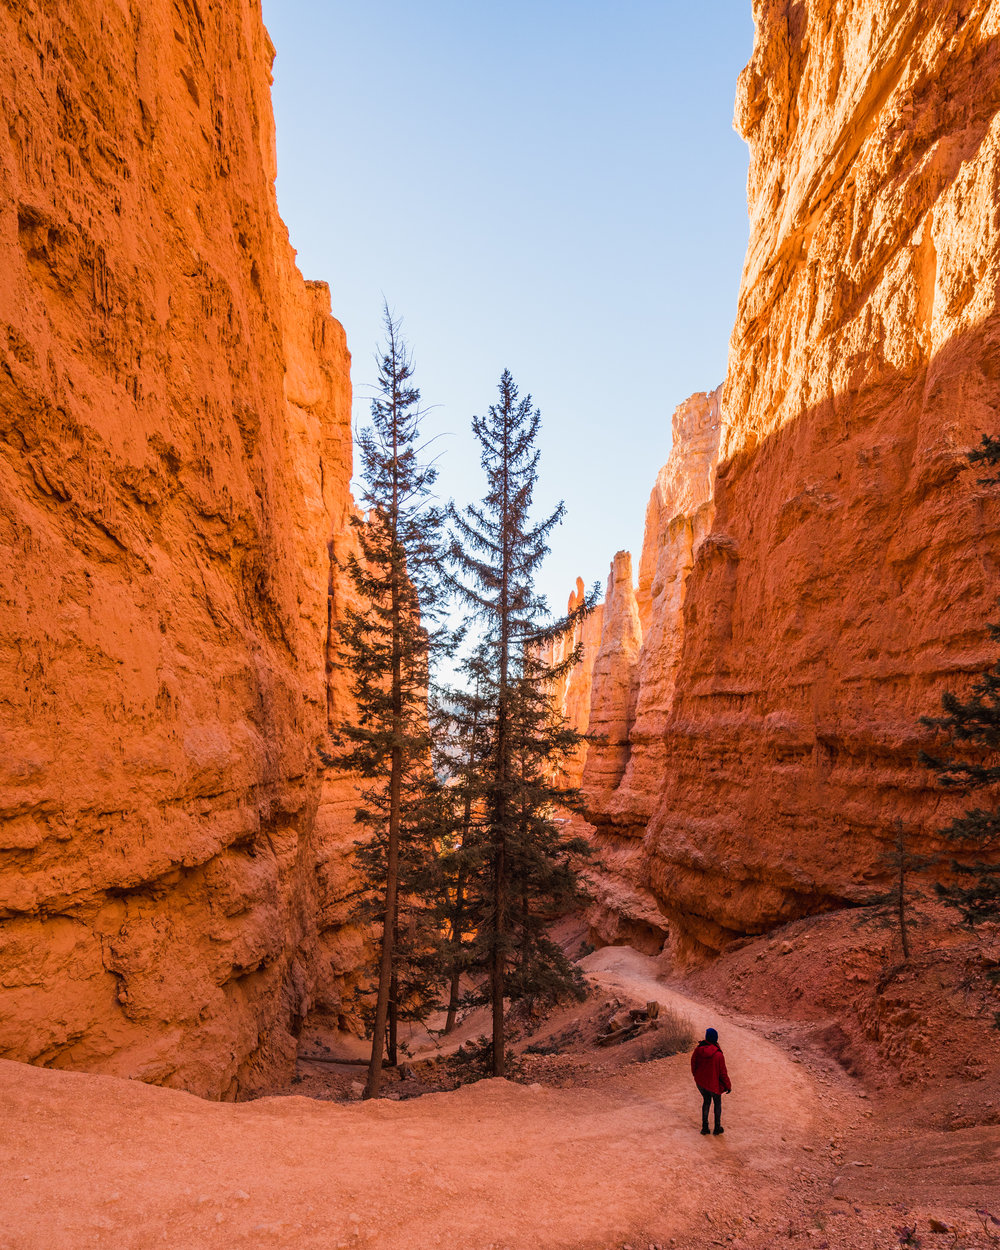 Sunrise sunset point Bryce canyon national park utah sony ar73 a7riii queens garden navajo loop trail best hikes switchbacks